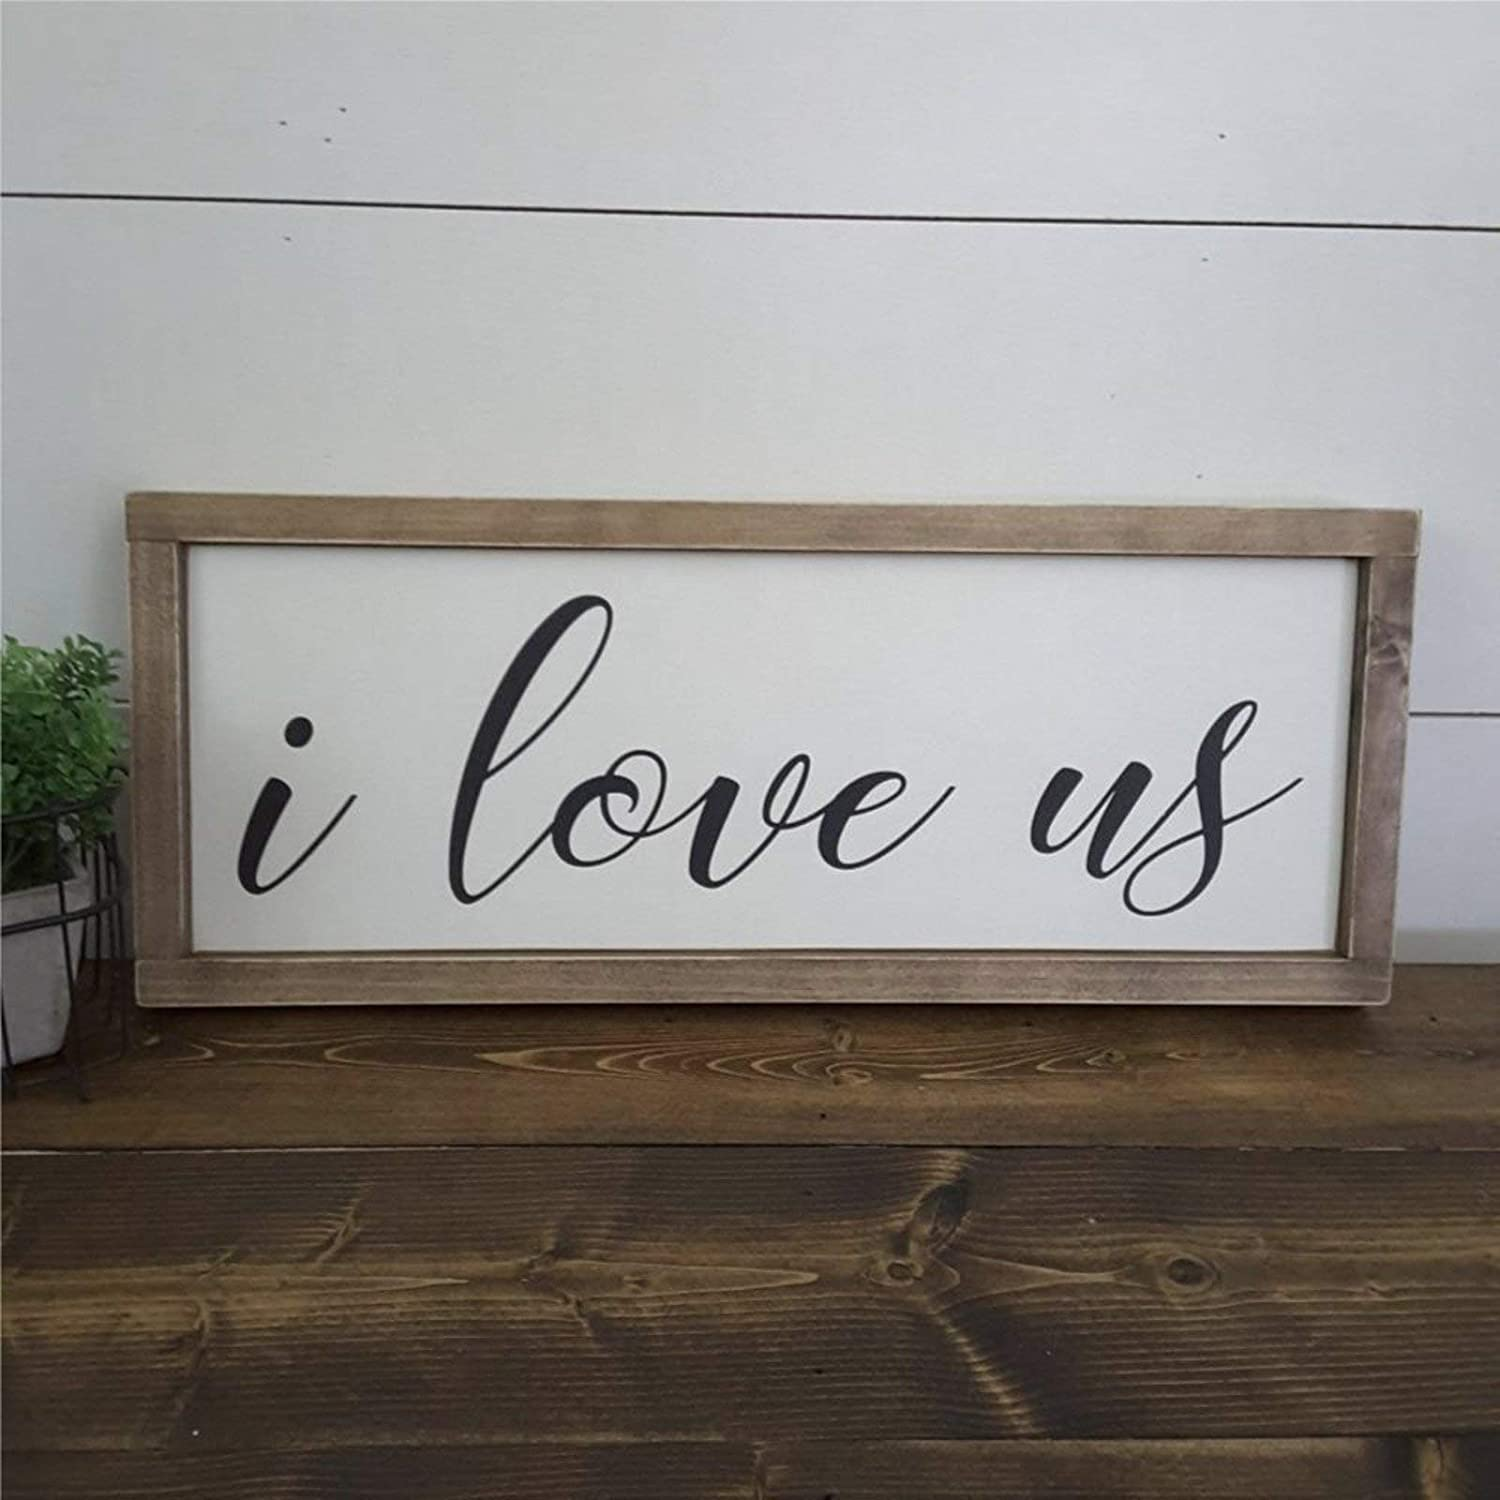 DONL9BAUER I Love You Our Story Wedding Rustic Anniversary for Her Wooden Wall Decor Sign, Framed Wood Sign &Wooden Plaque for Home,Gardens, Porch, Coffee Shops.